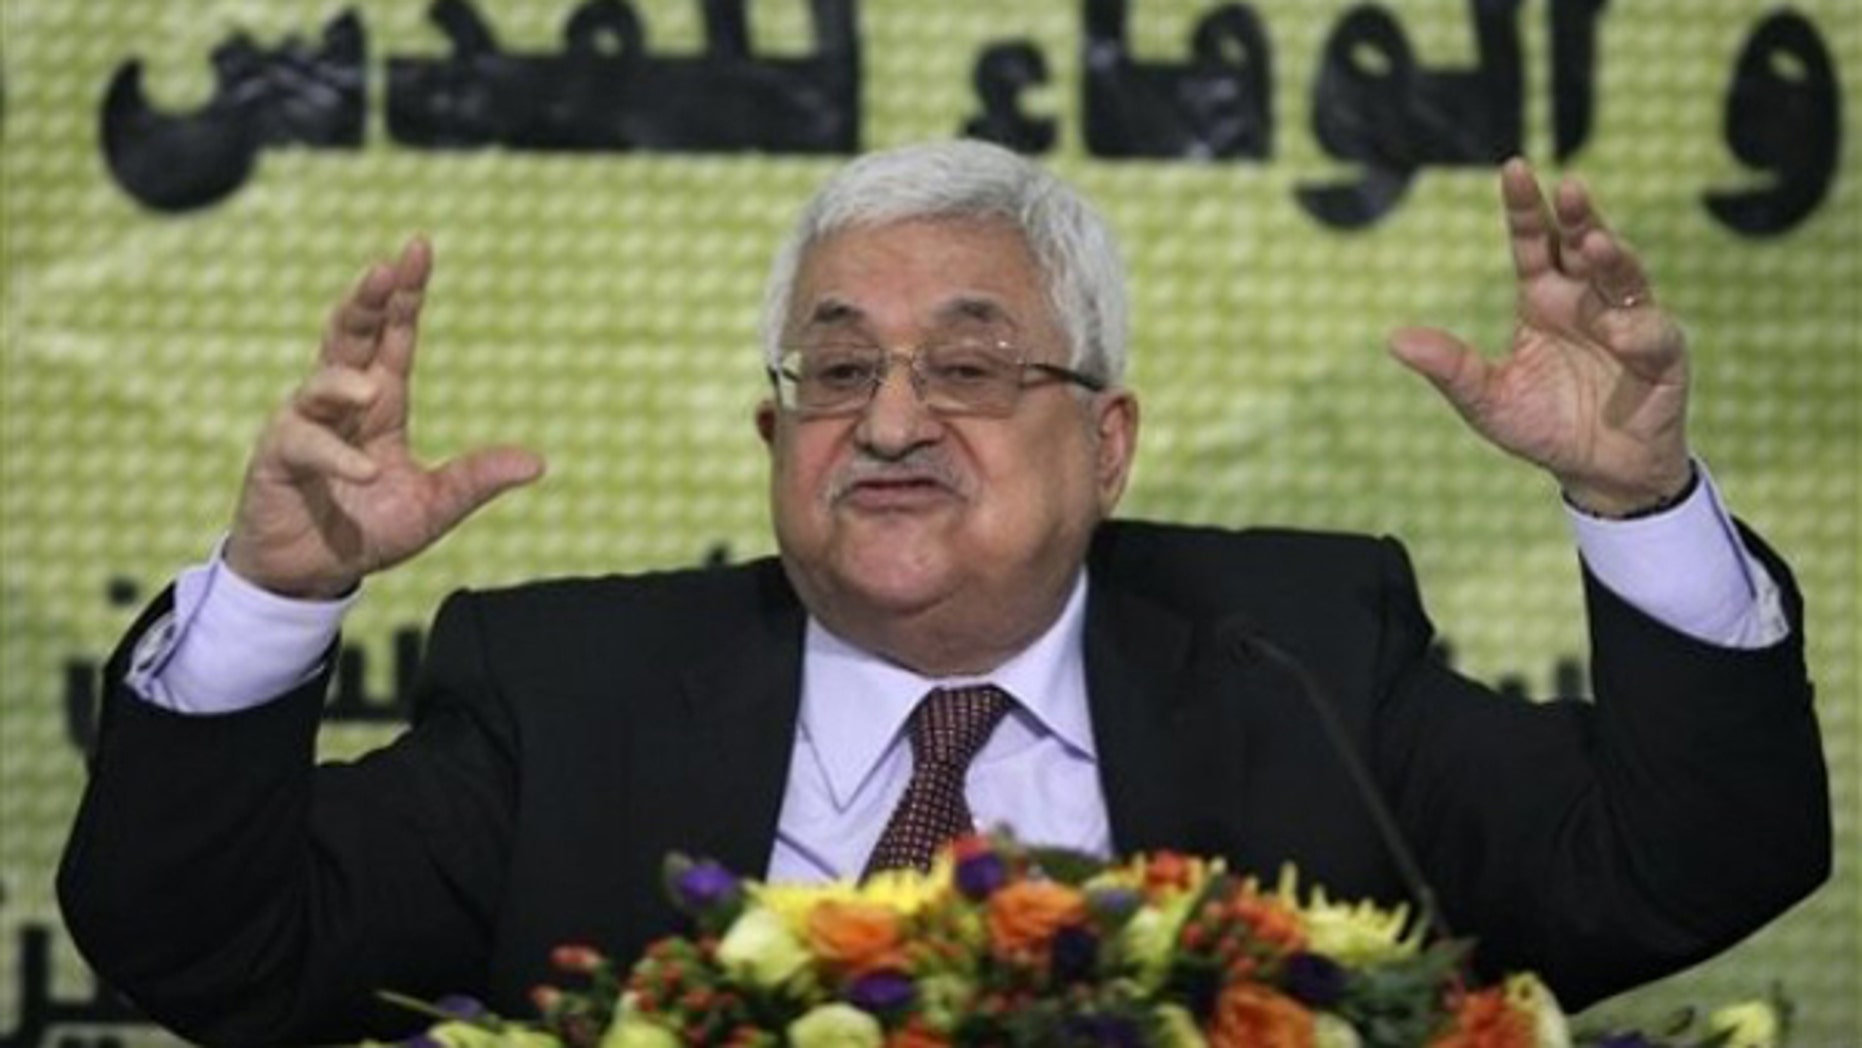 Palestinian President Mahmoud Abbas speaks to leaders of his Fatah movement in the West Bank city of Ramallah April 24. (AP Photo)